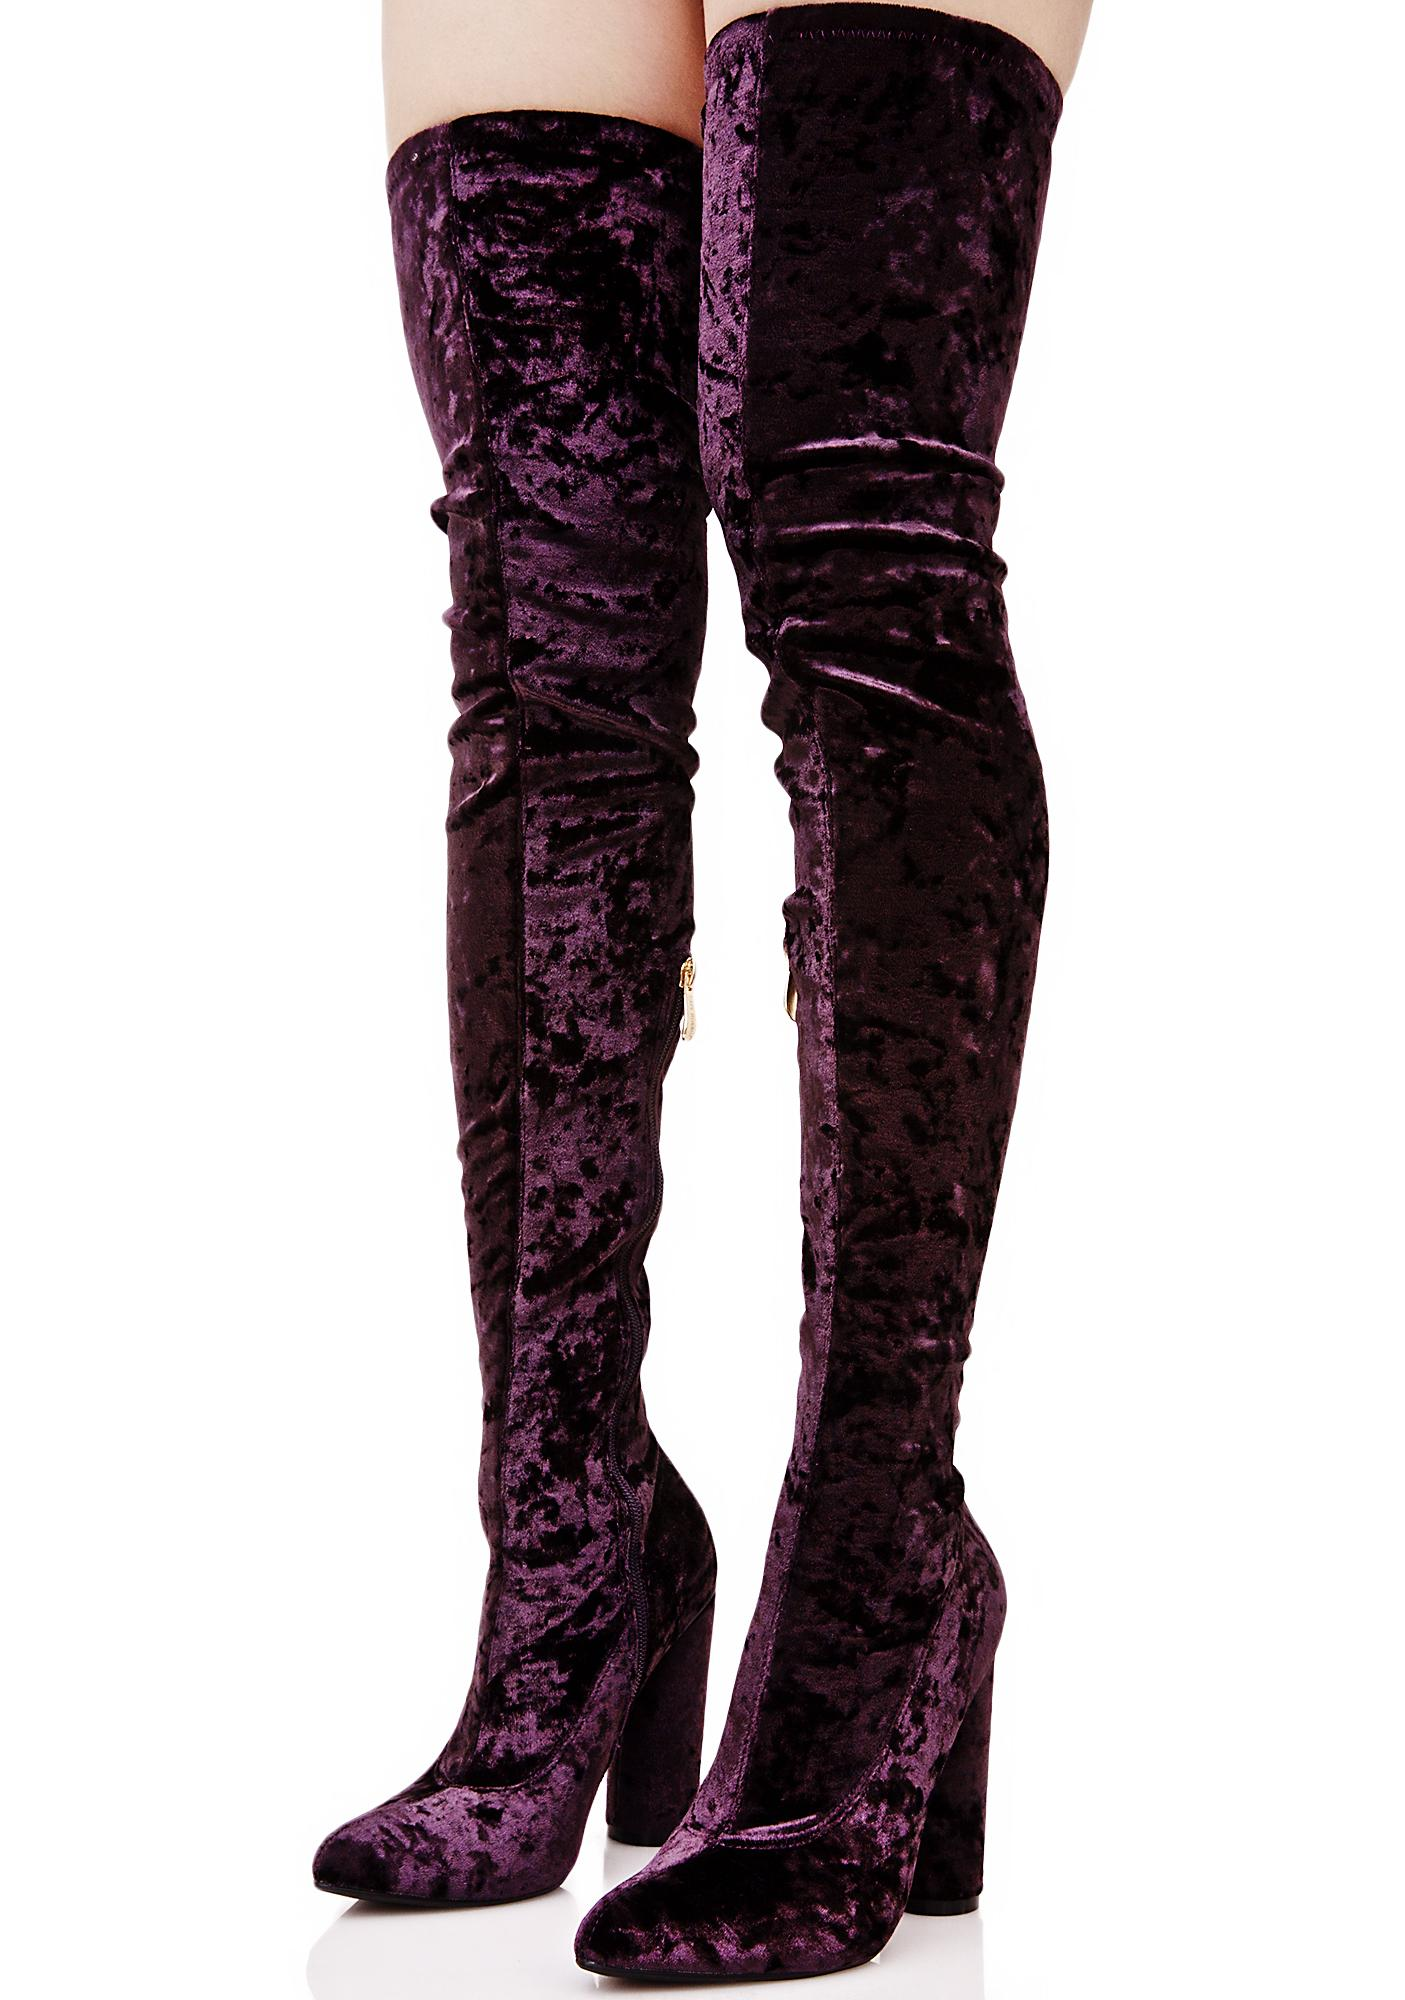 Amethyst Planetary Thigh-High Boots